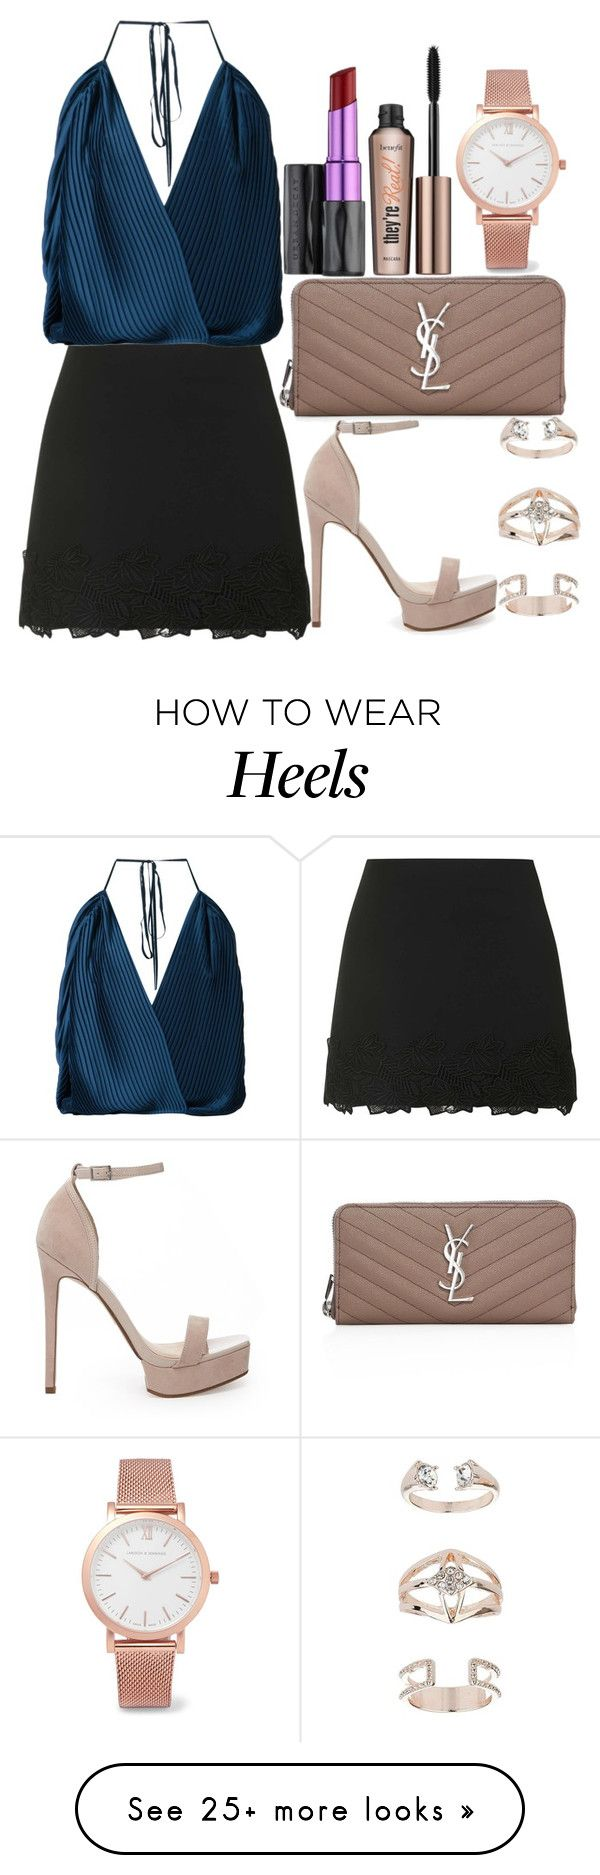 """""""Untitled#1437"""" by mihai-theodora on Polyvore featuring Topshop, Tome, ASOS, Benefit, Yves Saint Laurent, Urban Decay and Larsson & Jennings"""